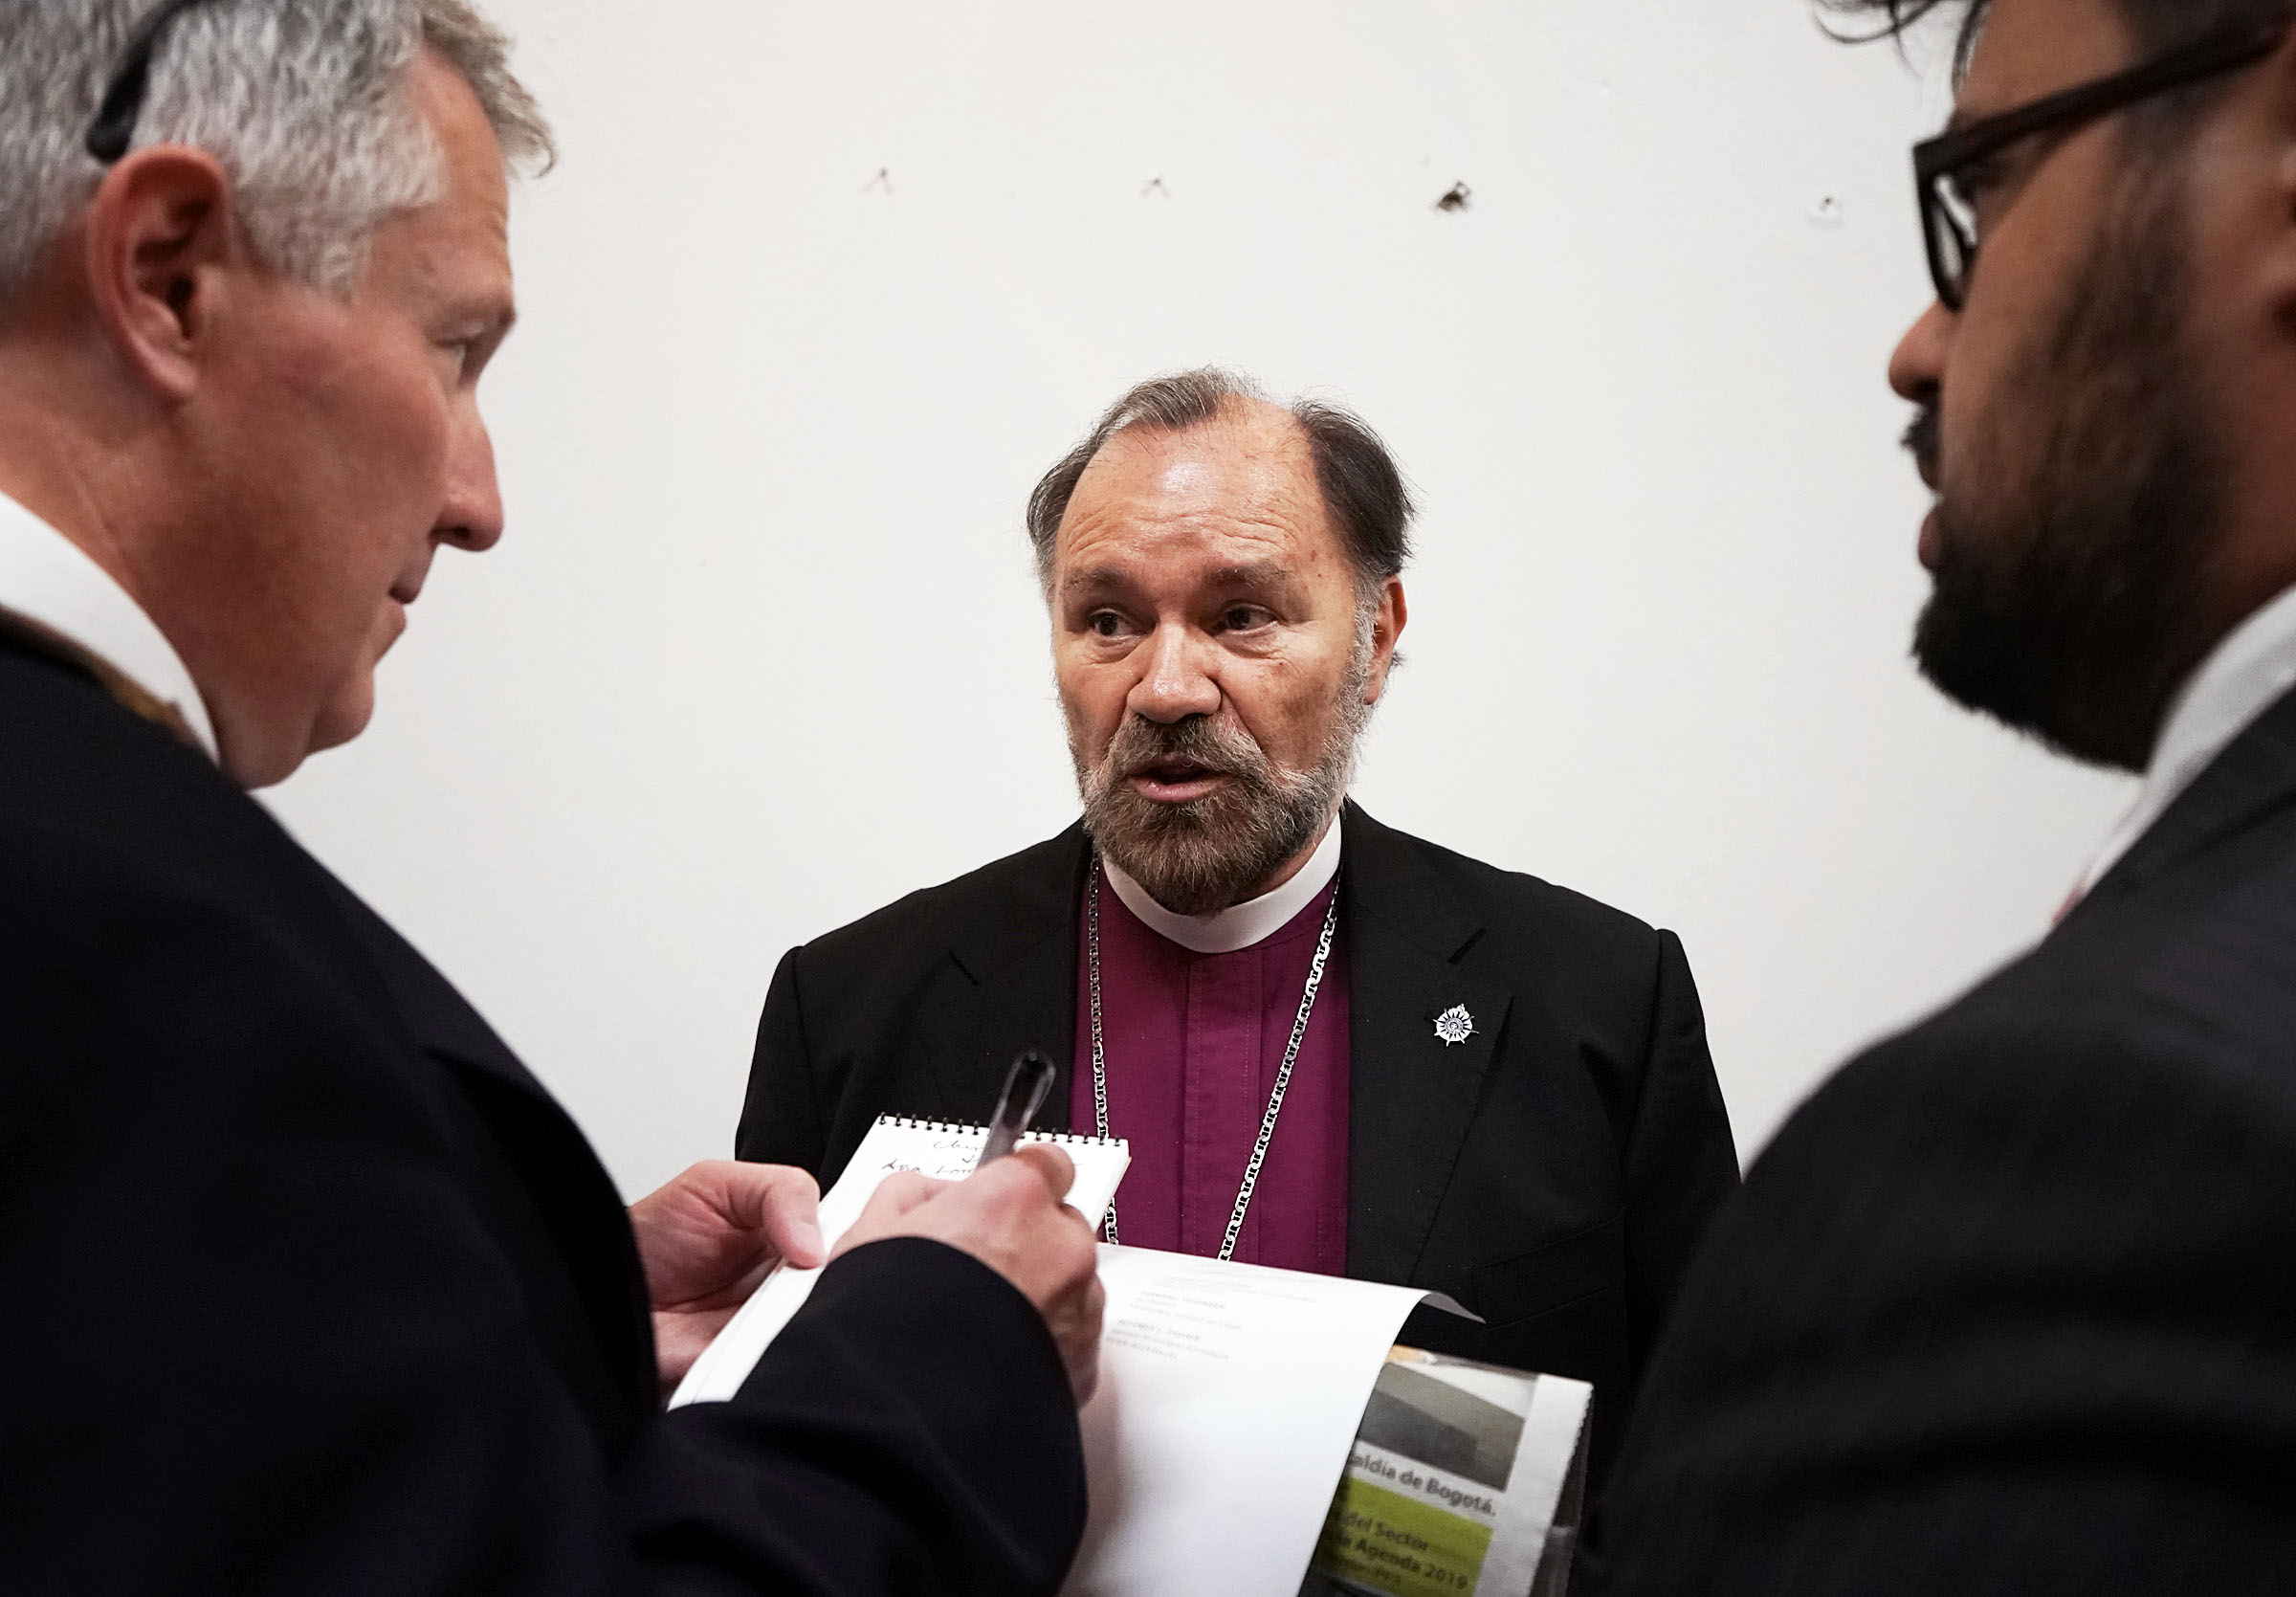 Monsignor Francisco Duque, bishop of the Episcopal Church in Colombia, is interviewed before a Latin America Ministry Tour devotional in Bogota, Colombia on Sunday, Aug. 25, 2019.